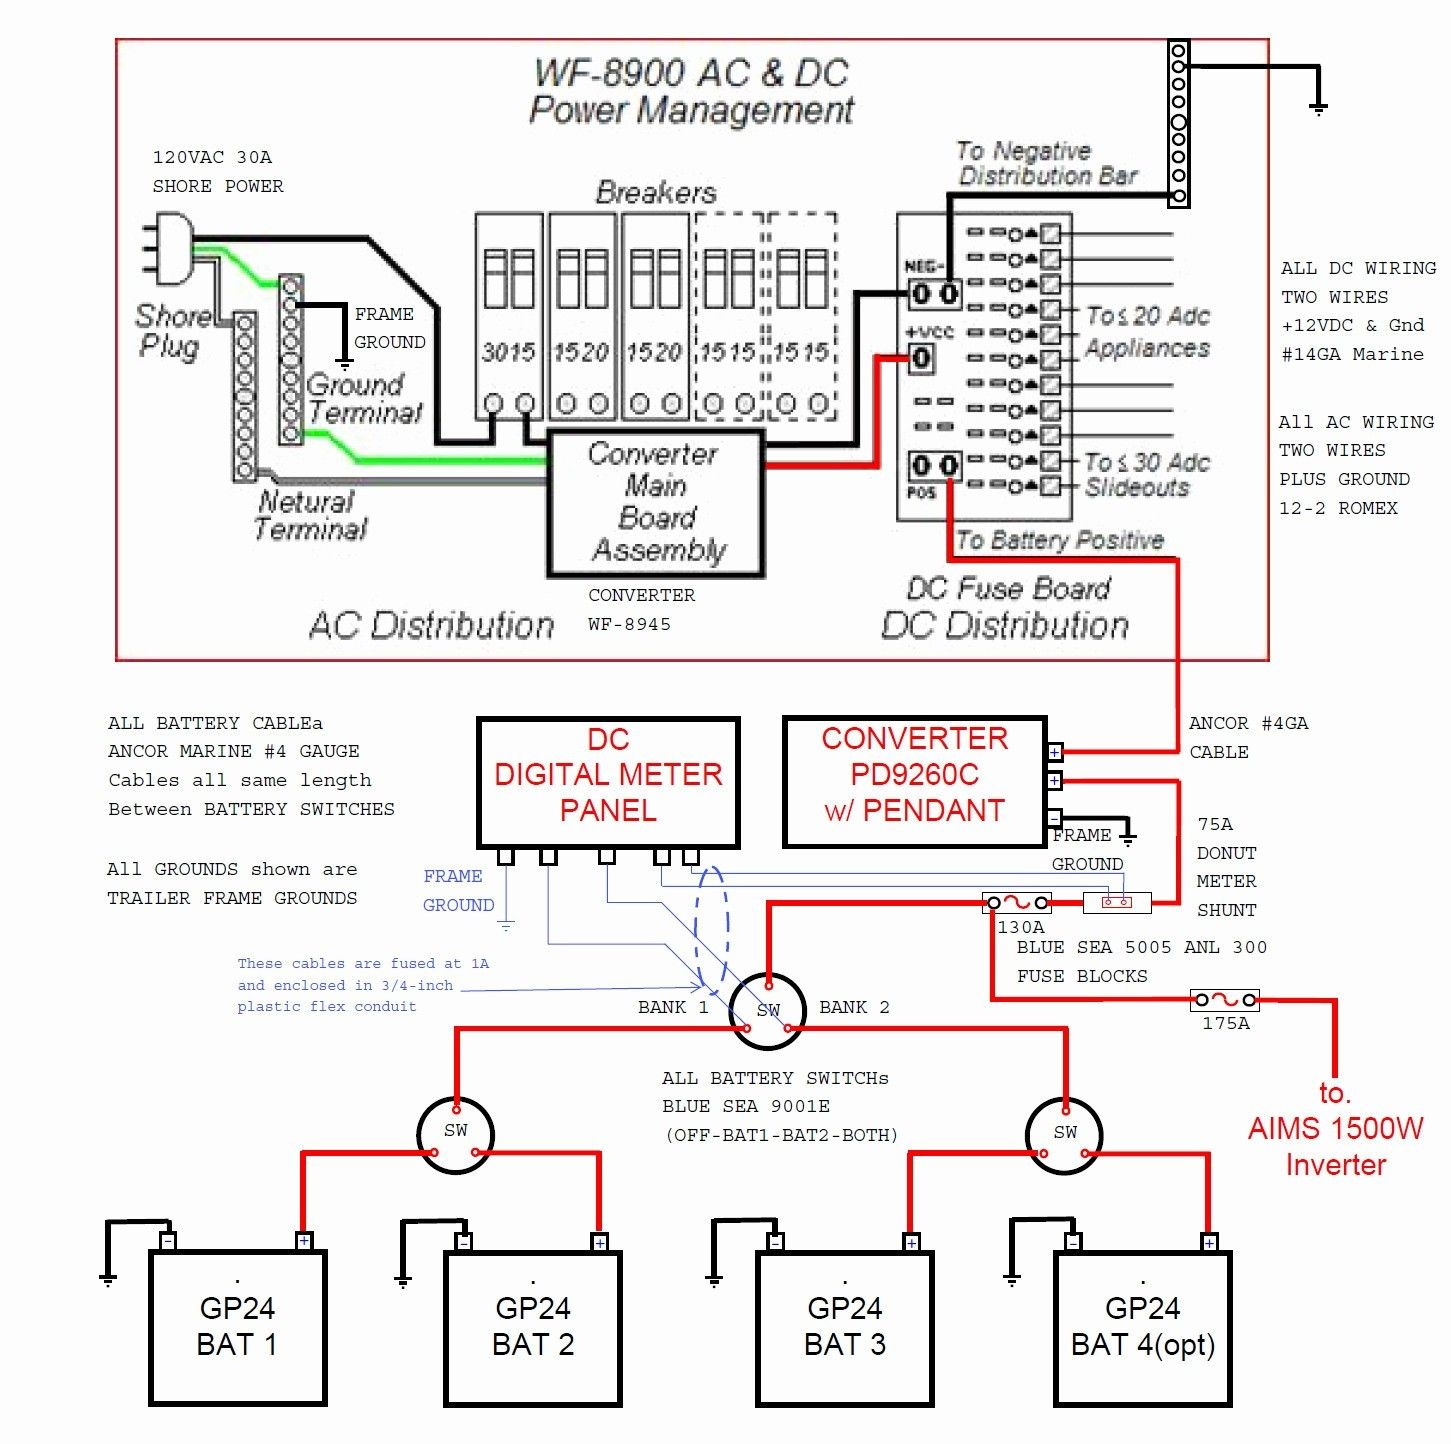 hight resolution of 30 amp rv plug wiring diagram inspirational wiring diagram for rv30 amp rv plug wiring diagram